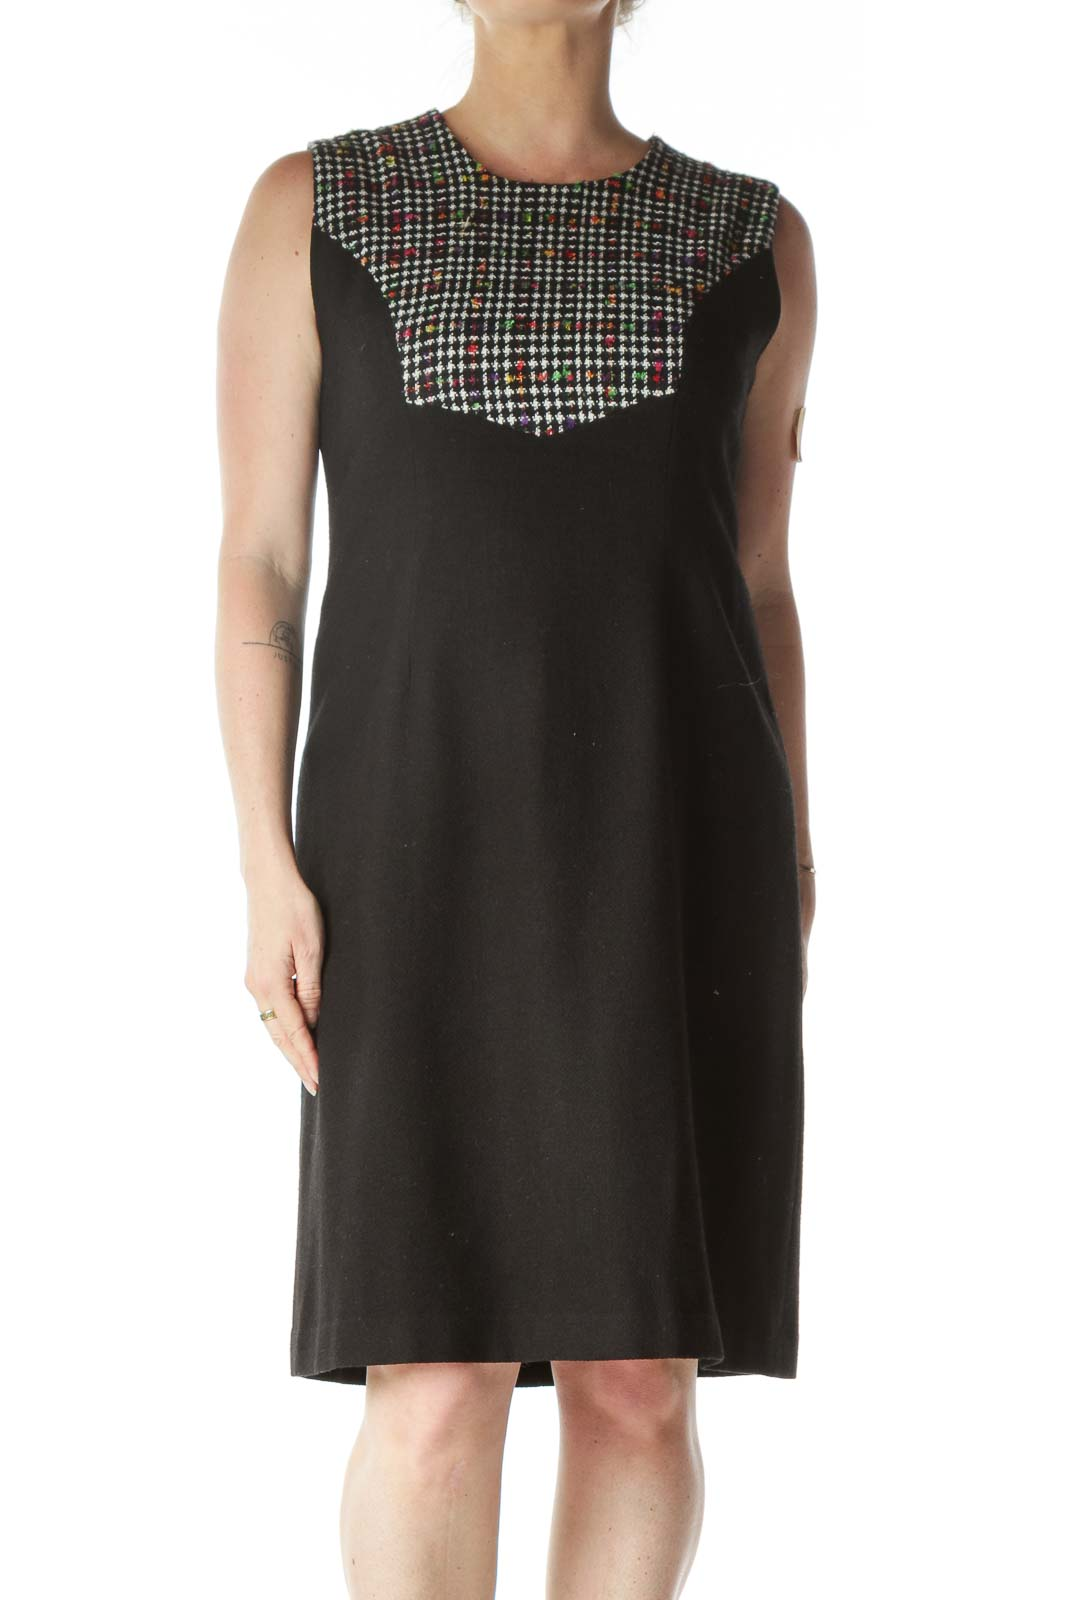 Black and Multicolor Detail Sleeveless Dress